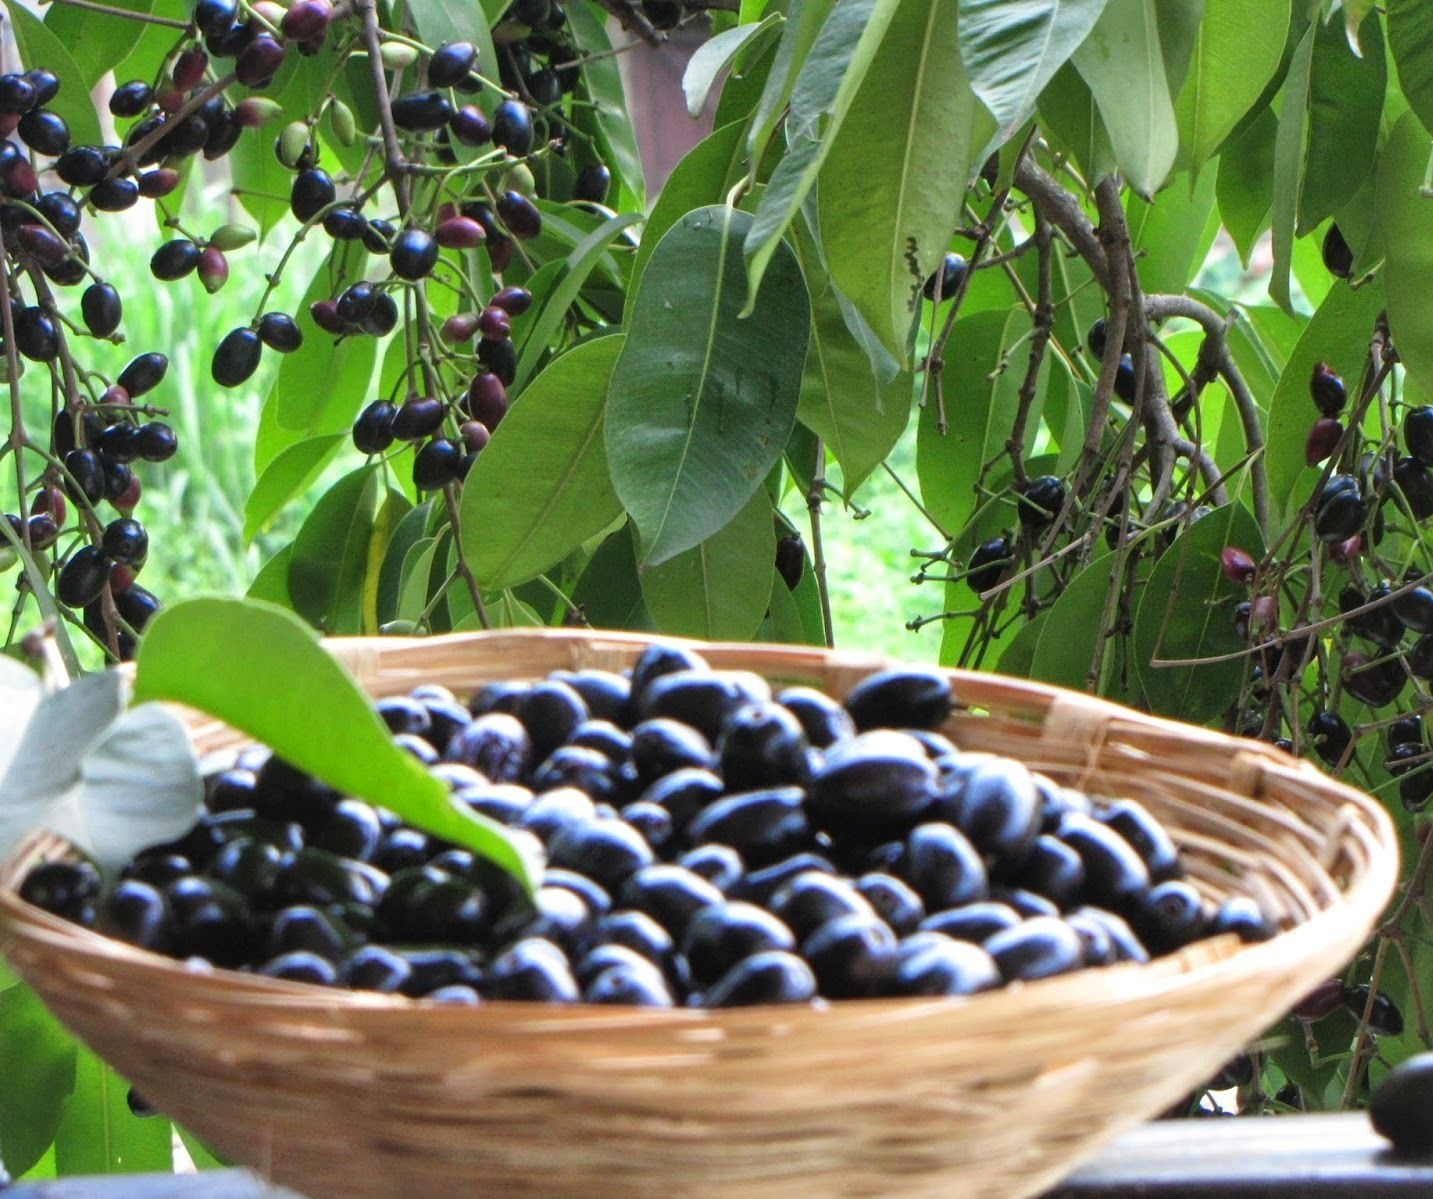 Black Jamun, a delicious sweet and tart fruit that grows in India